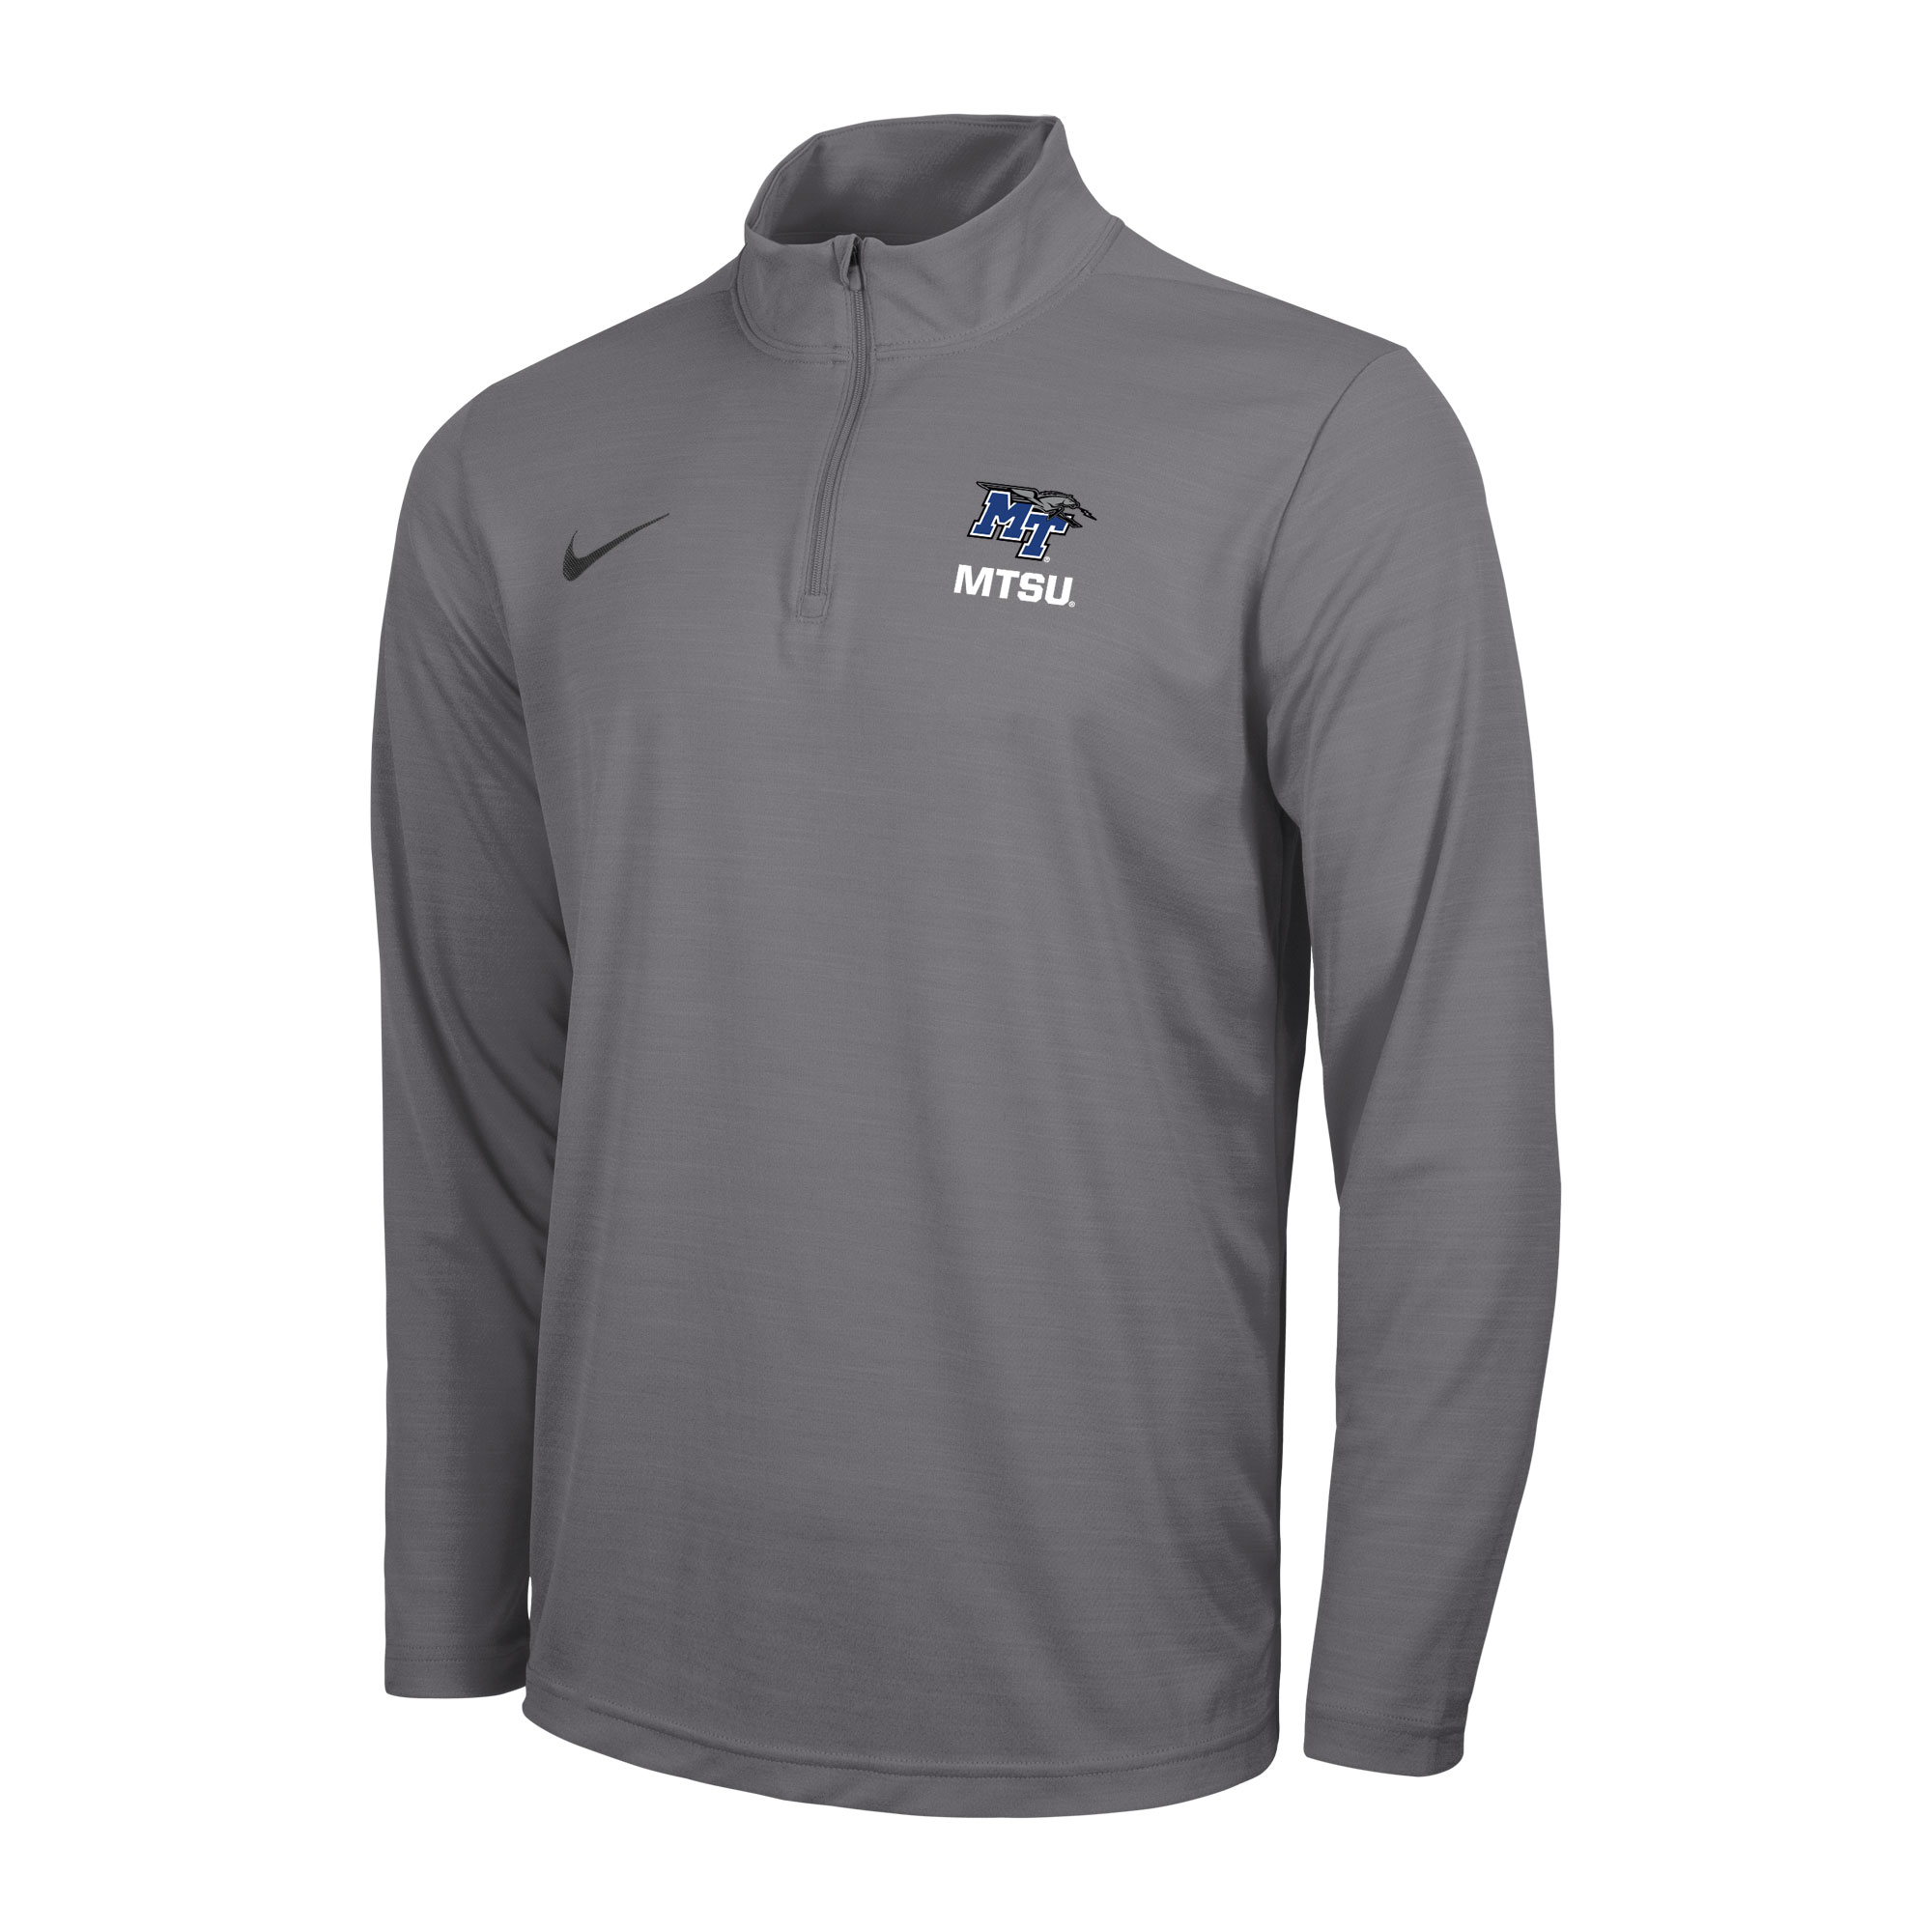 MT Logo w/ Lightning MTSU Intensity Nike® 1/4 Zip Top Pullover